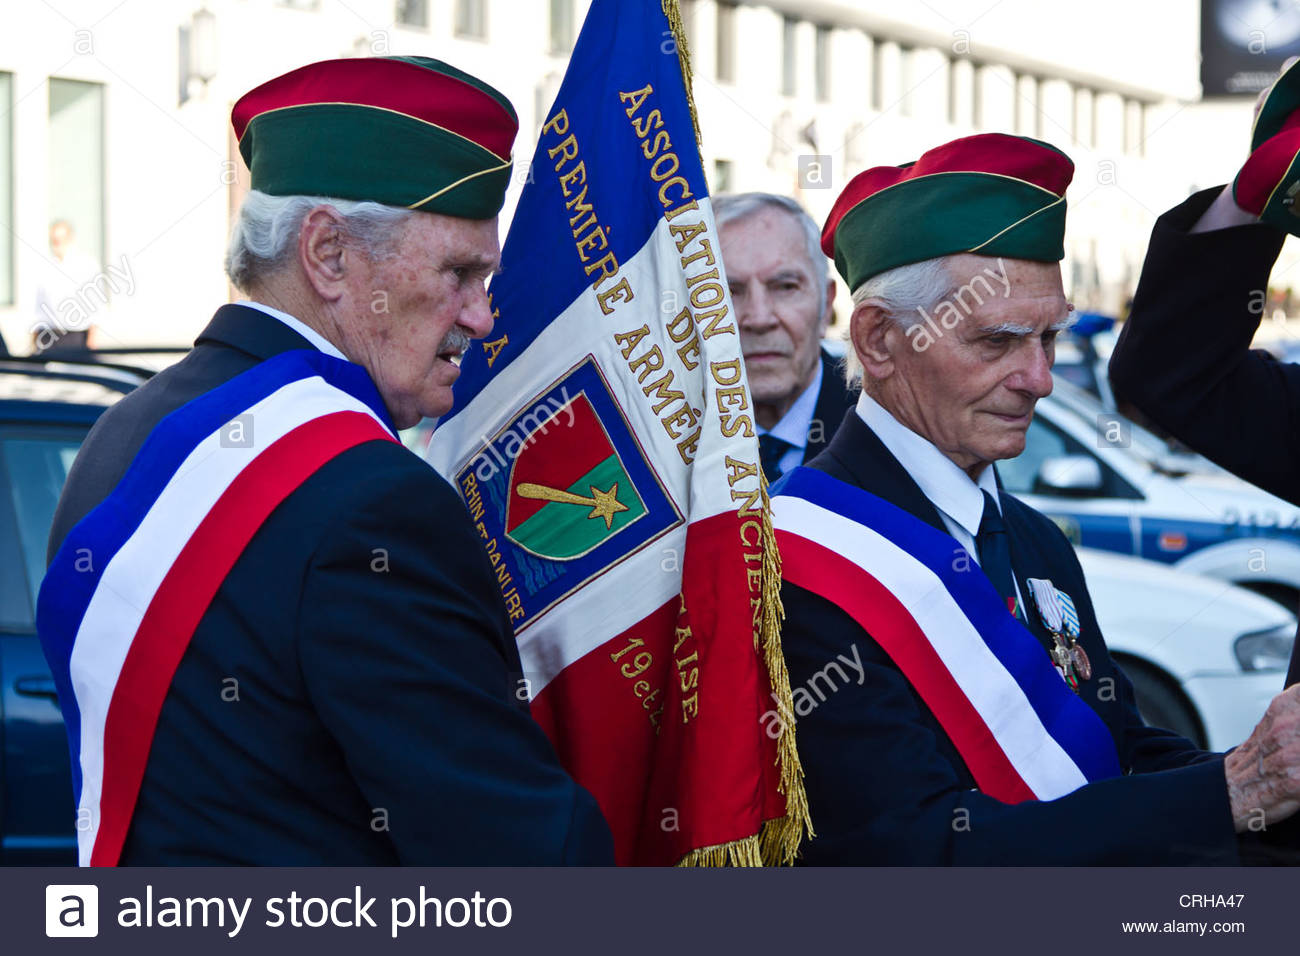 French Veterans in Warsaw, Poland - Stock Image